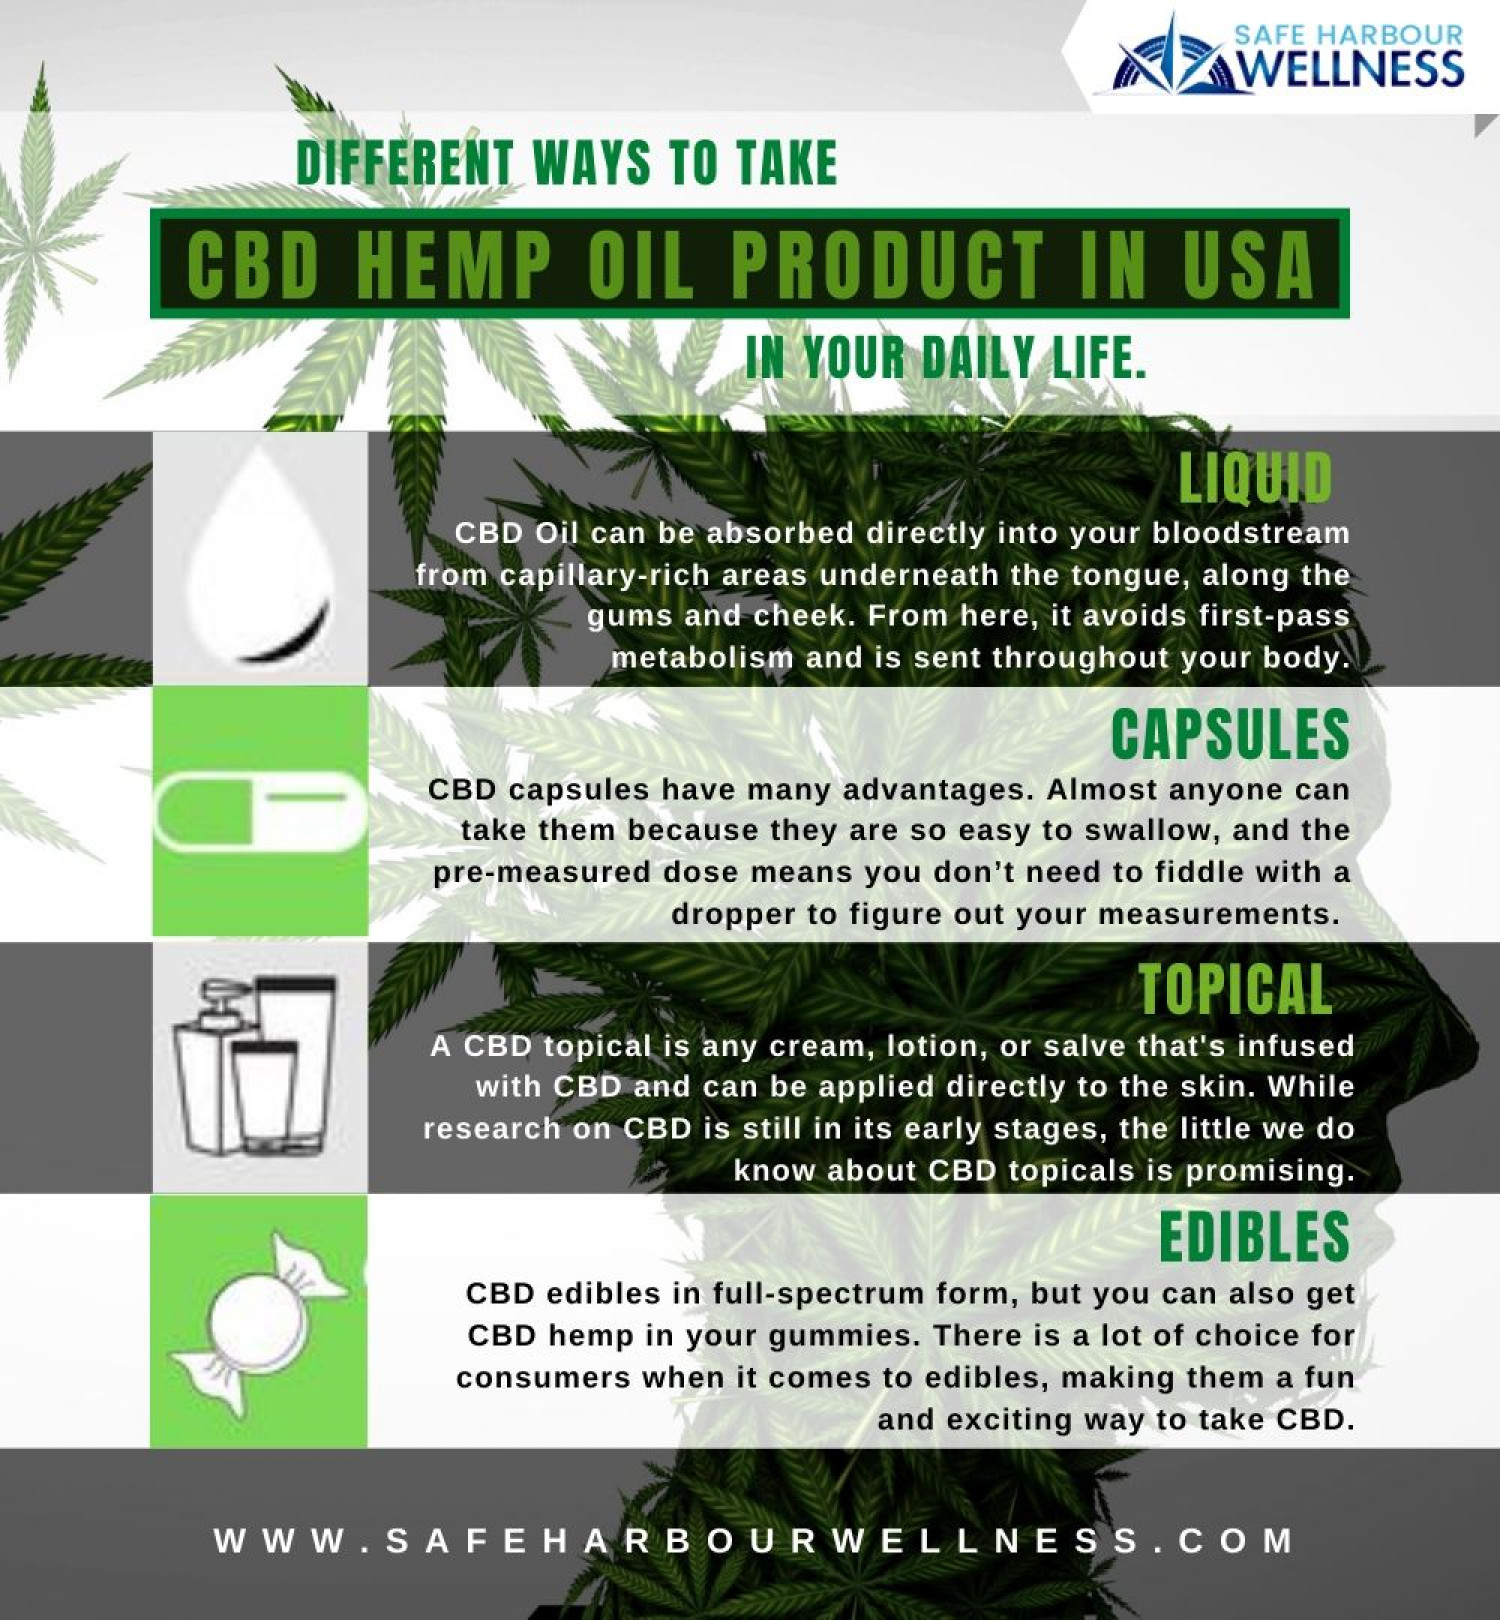 Different ways to take CBD Hemp Oil Product in USA in your daily life? Infographic